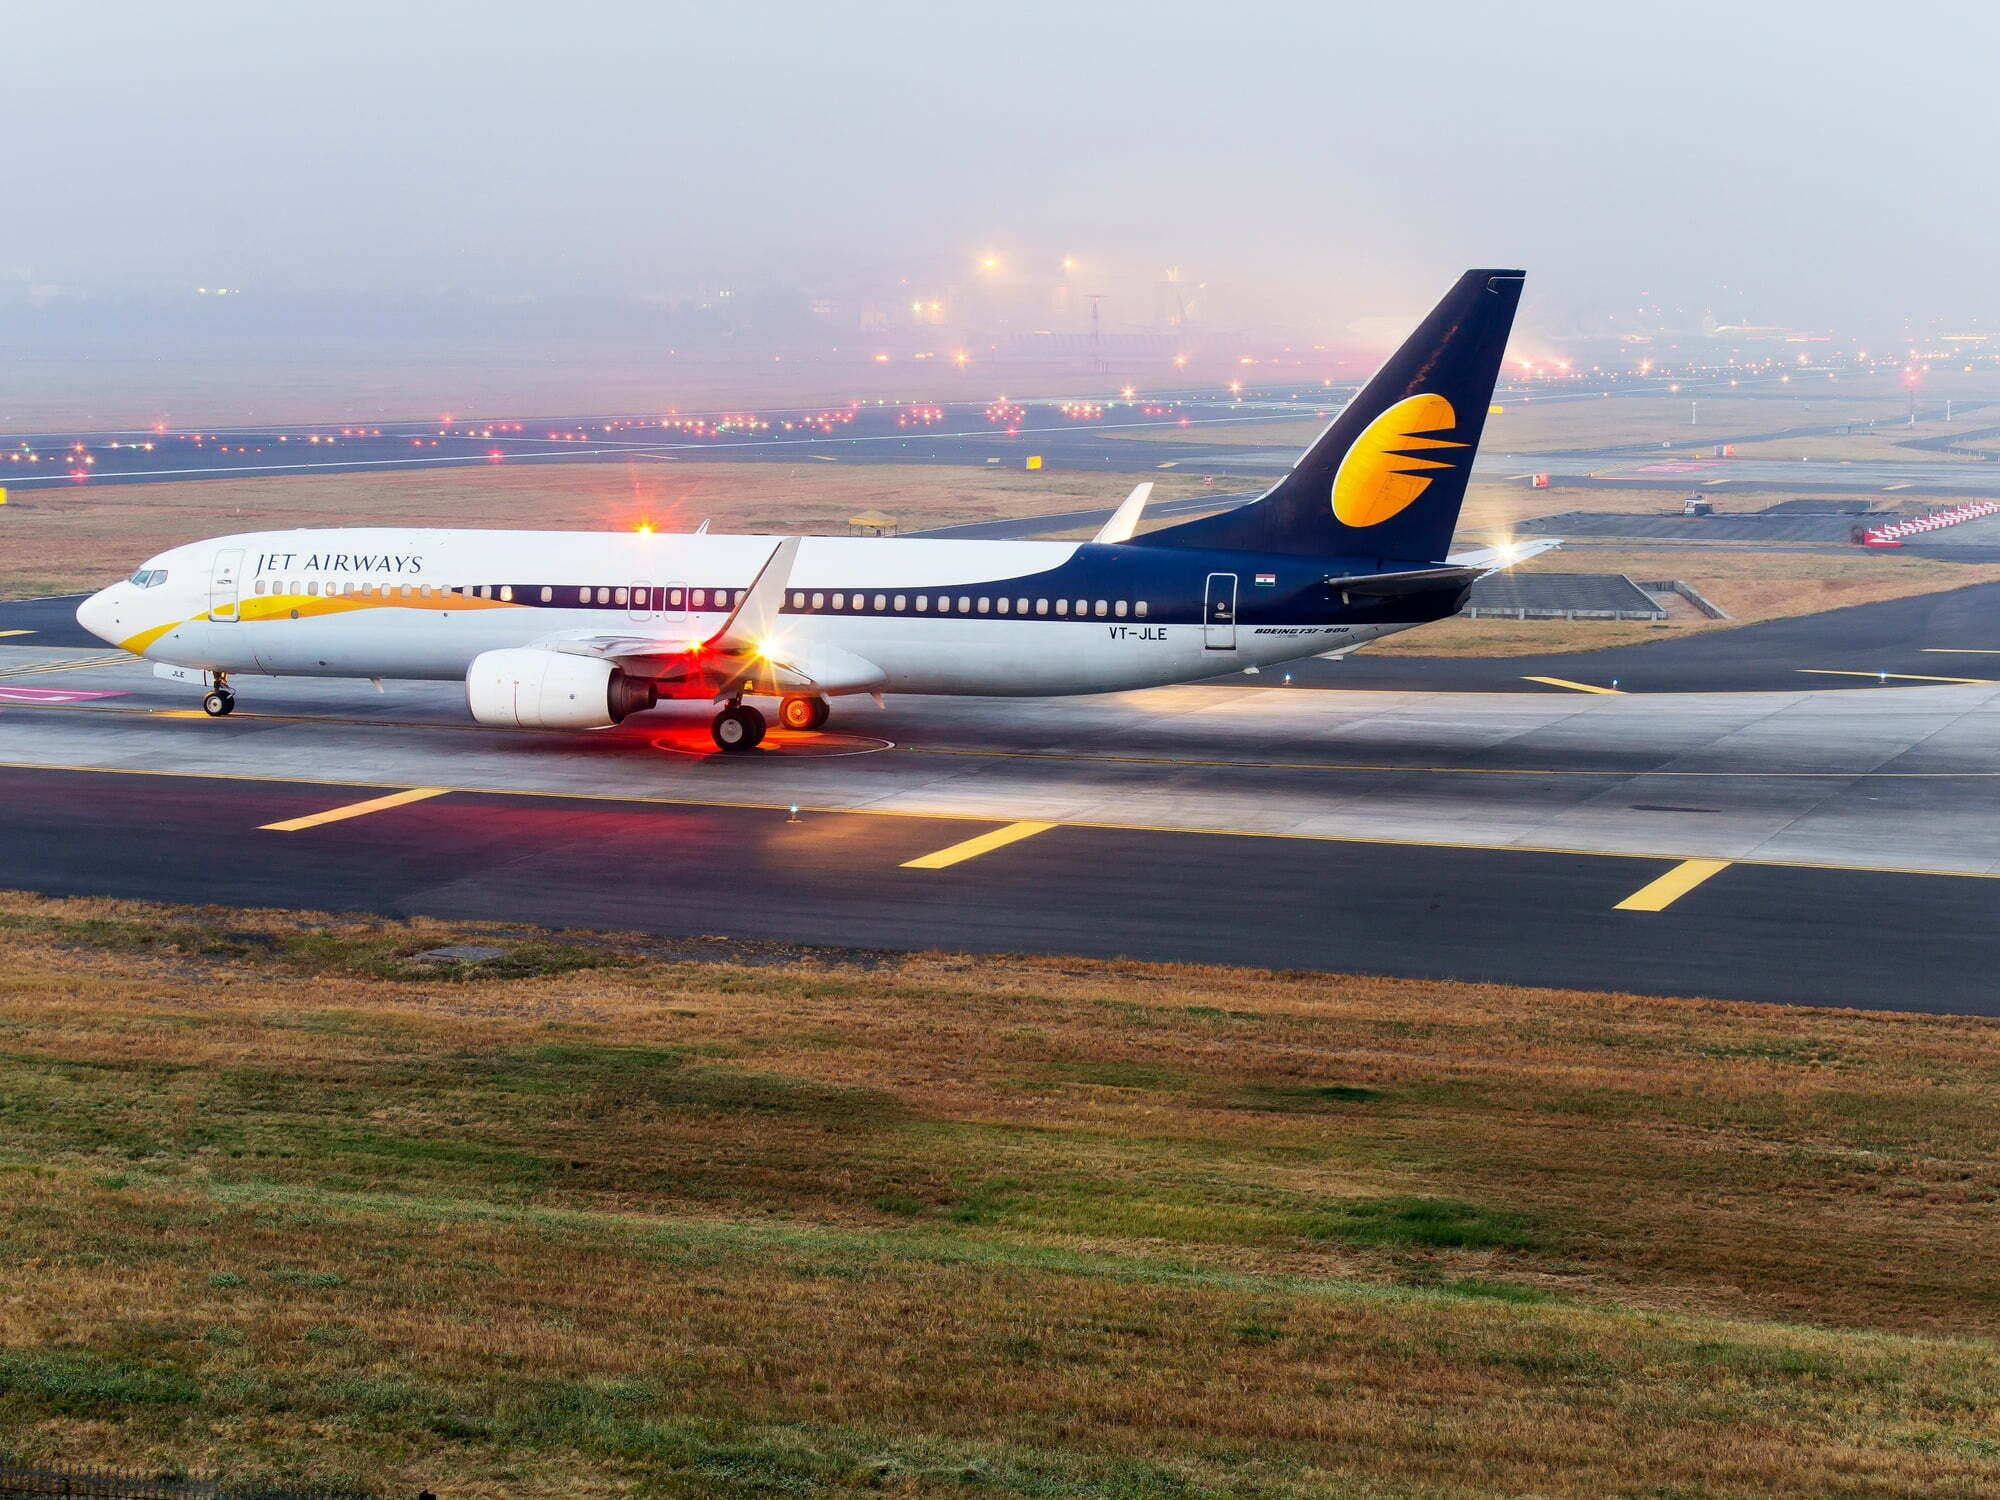 Grounded, no more! Jet Airways is back, to resume operations in early 2022